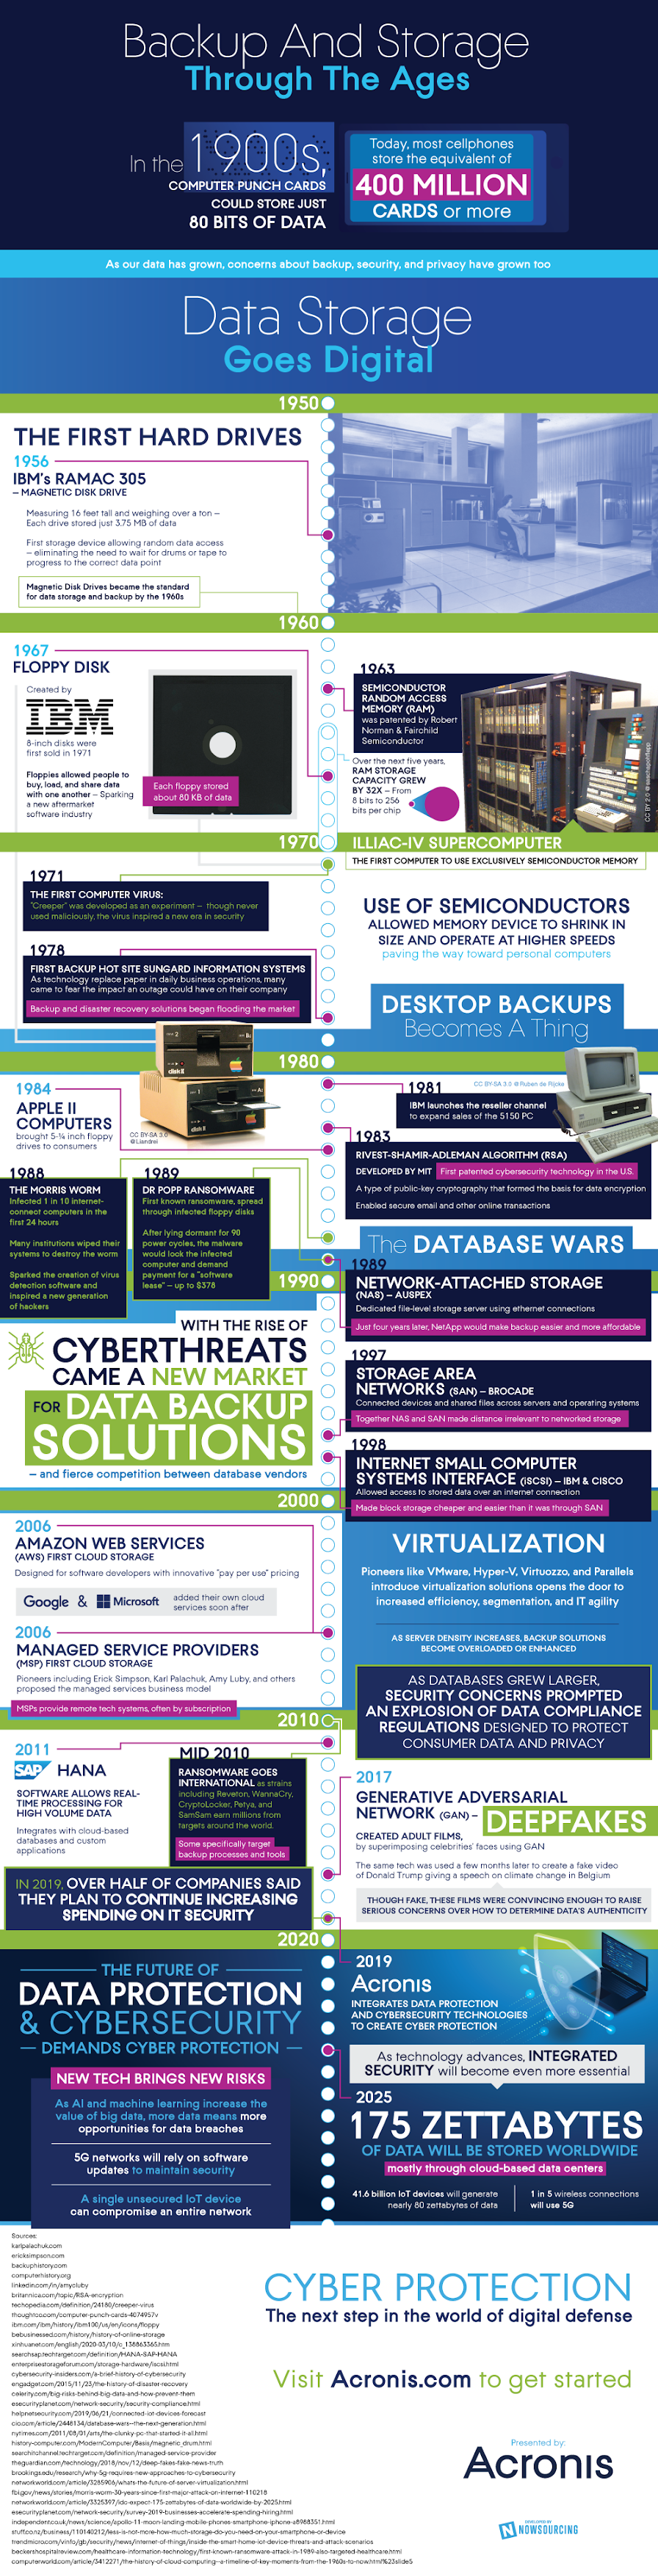 The Evolution Of Cyber Protection And Data Storage